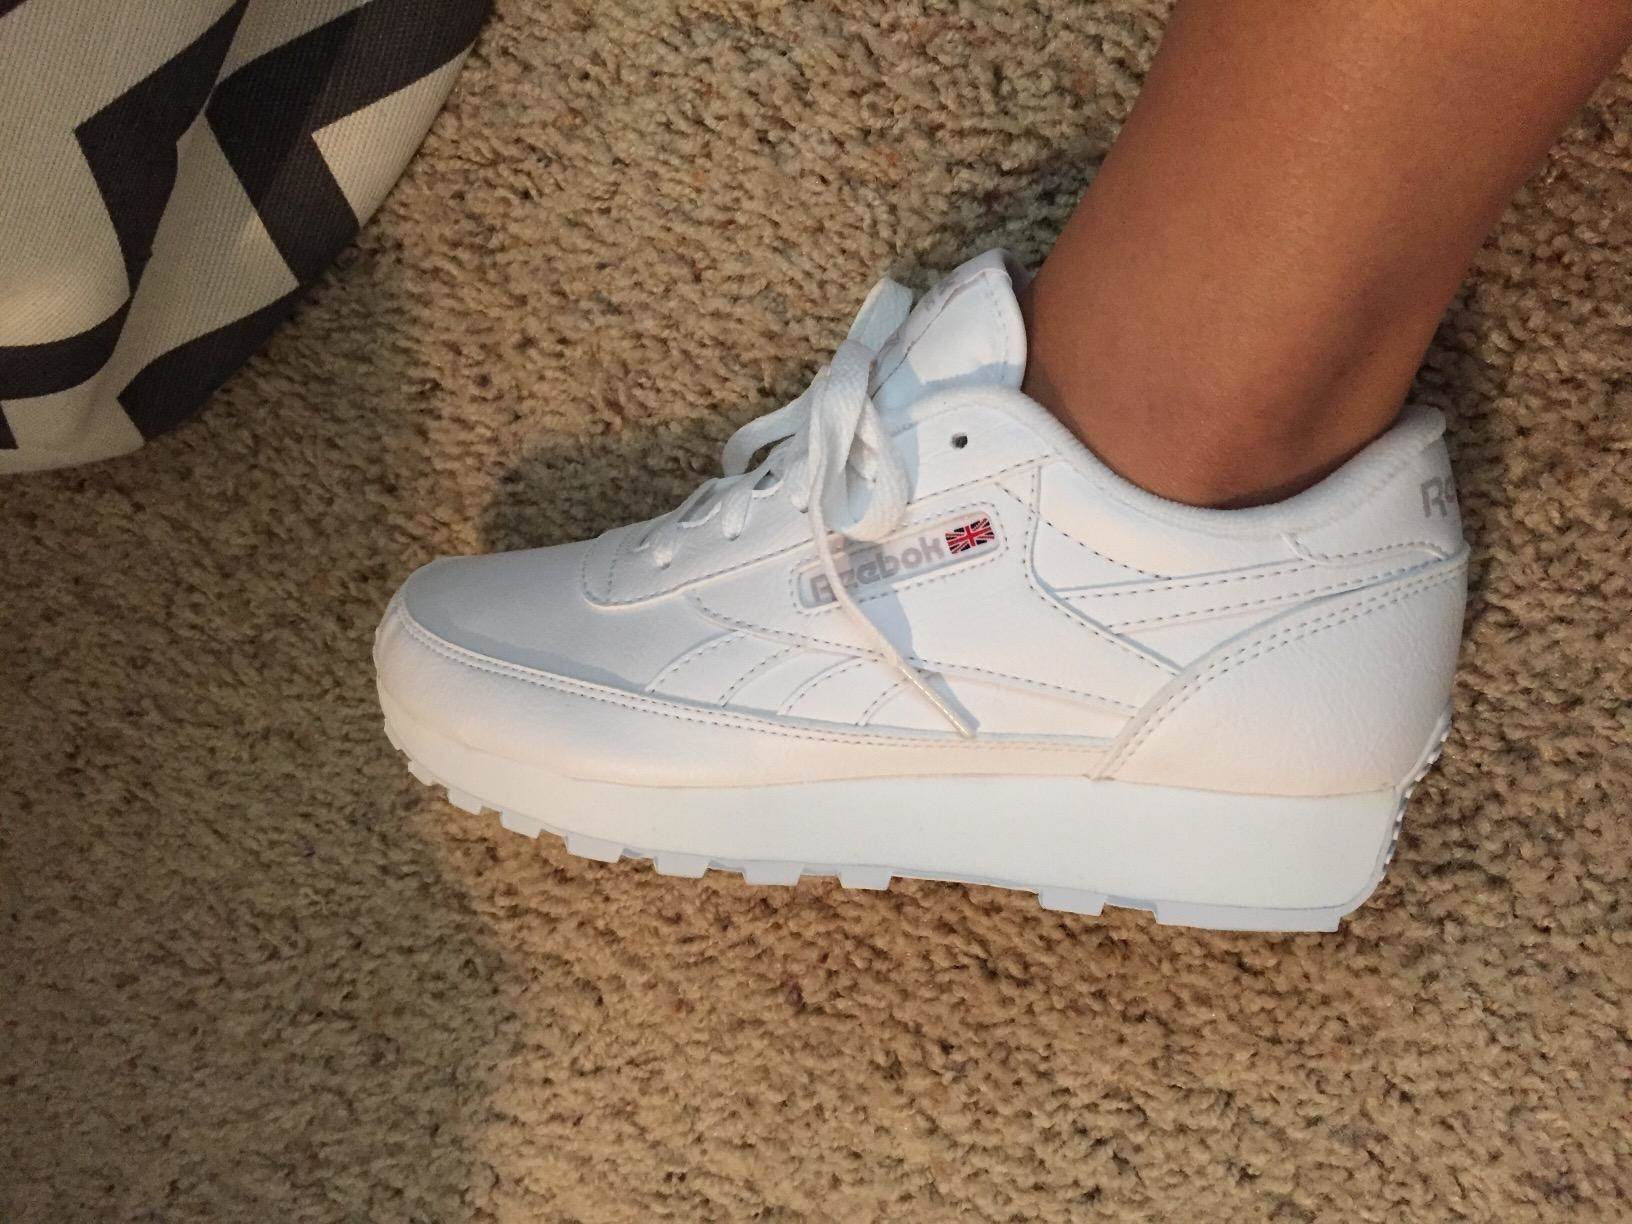 Reviewer wearing the white sneakers